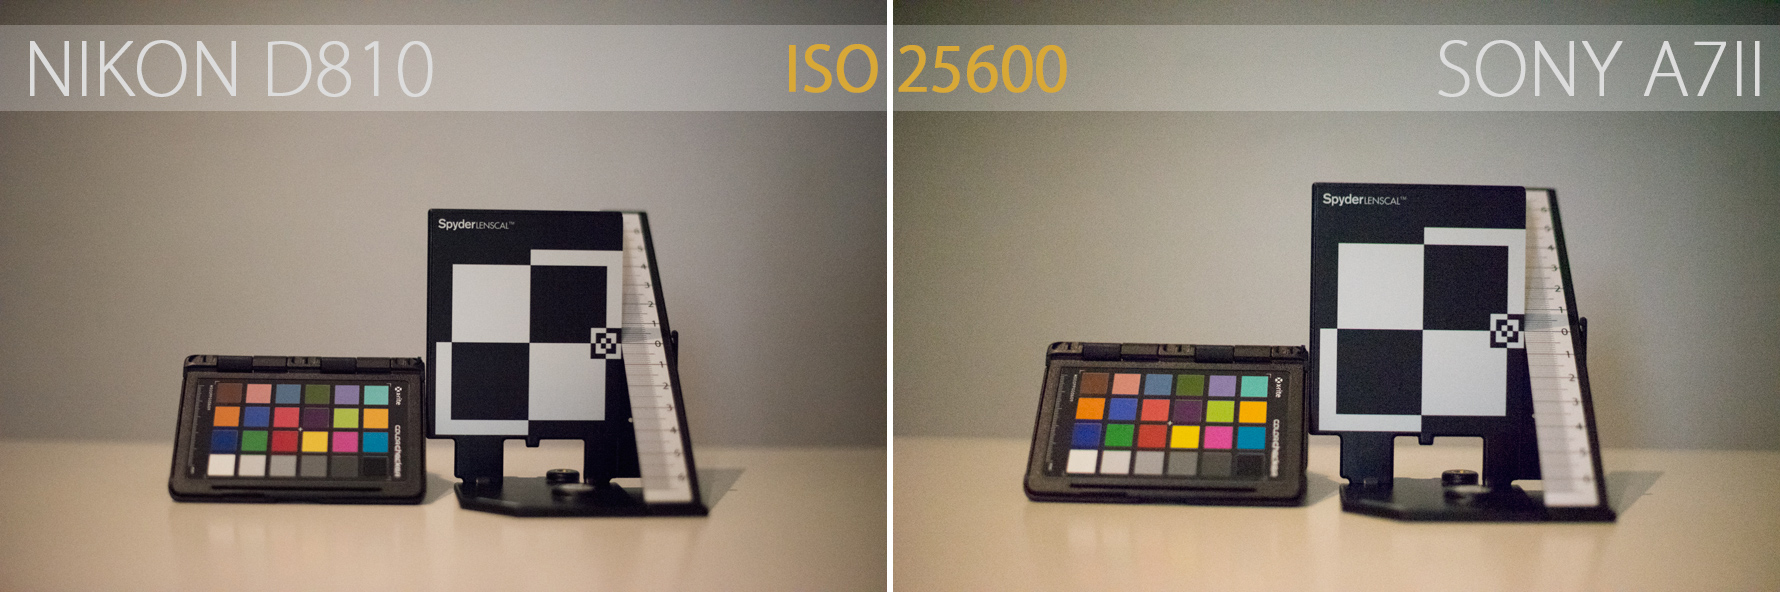 comparison between Nikon D810 and Sony a7II to ISO 25600